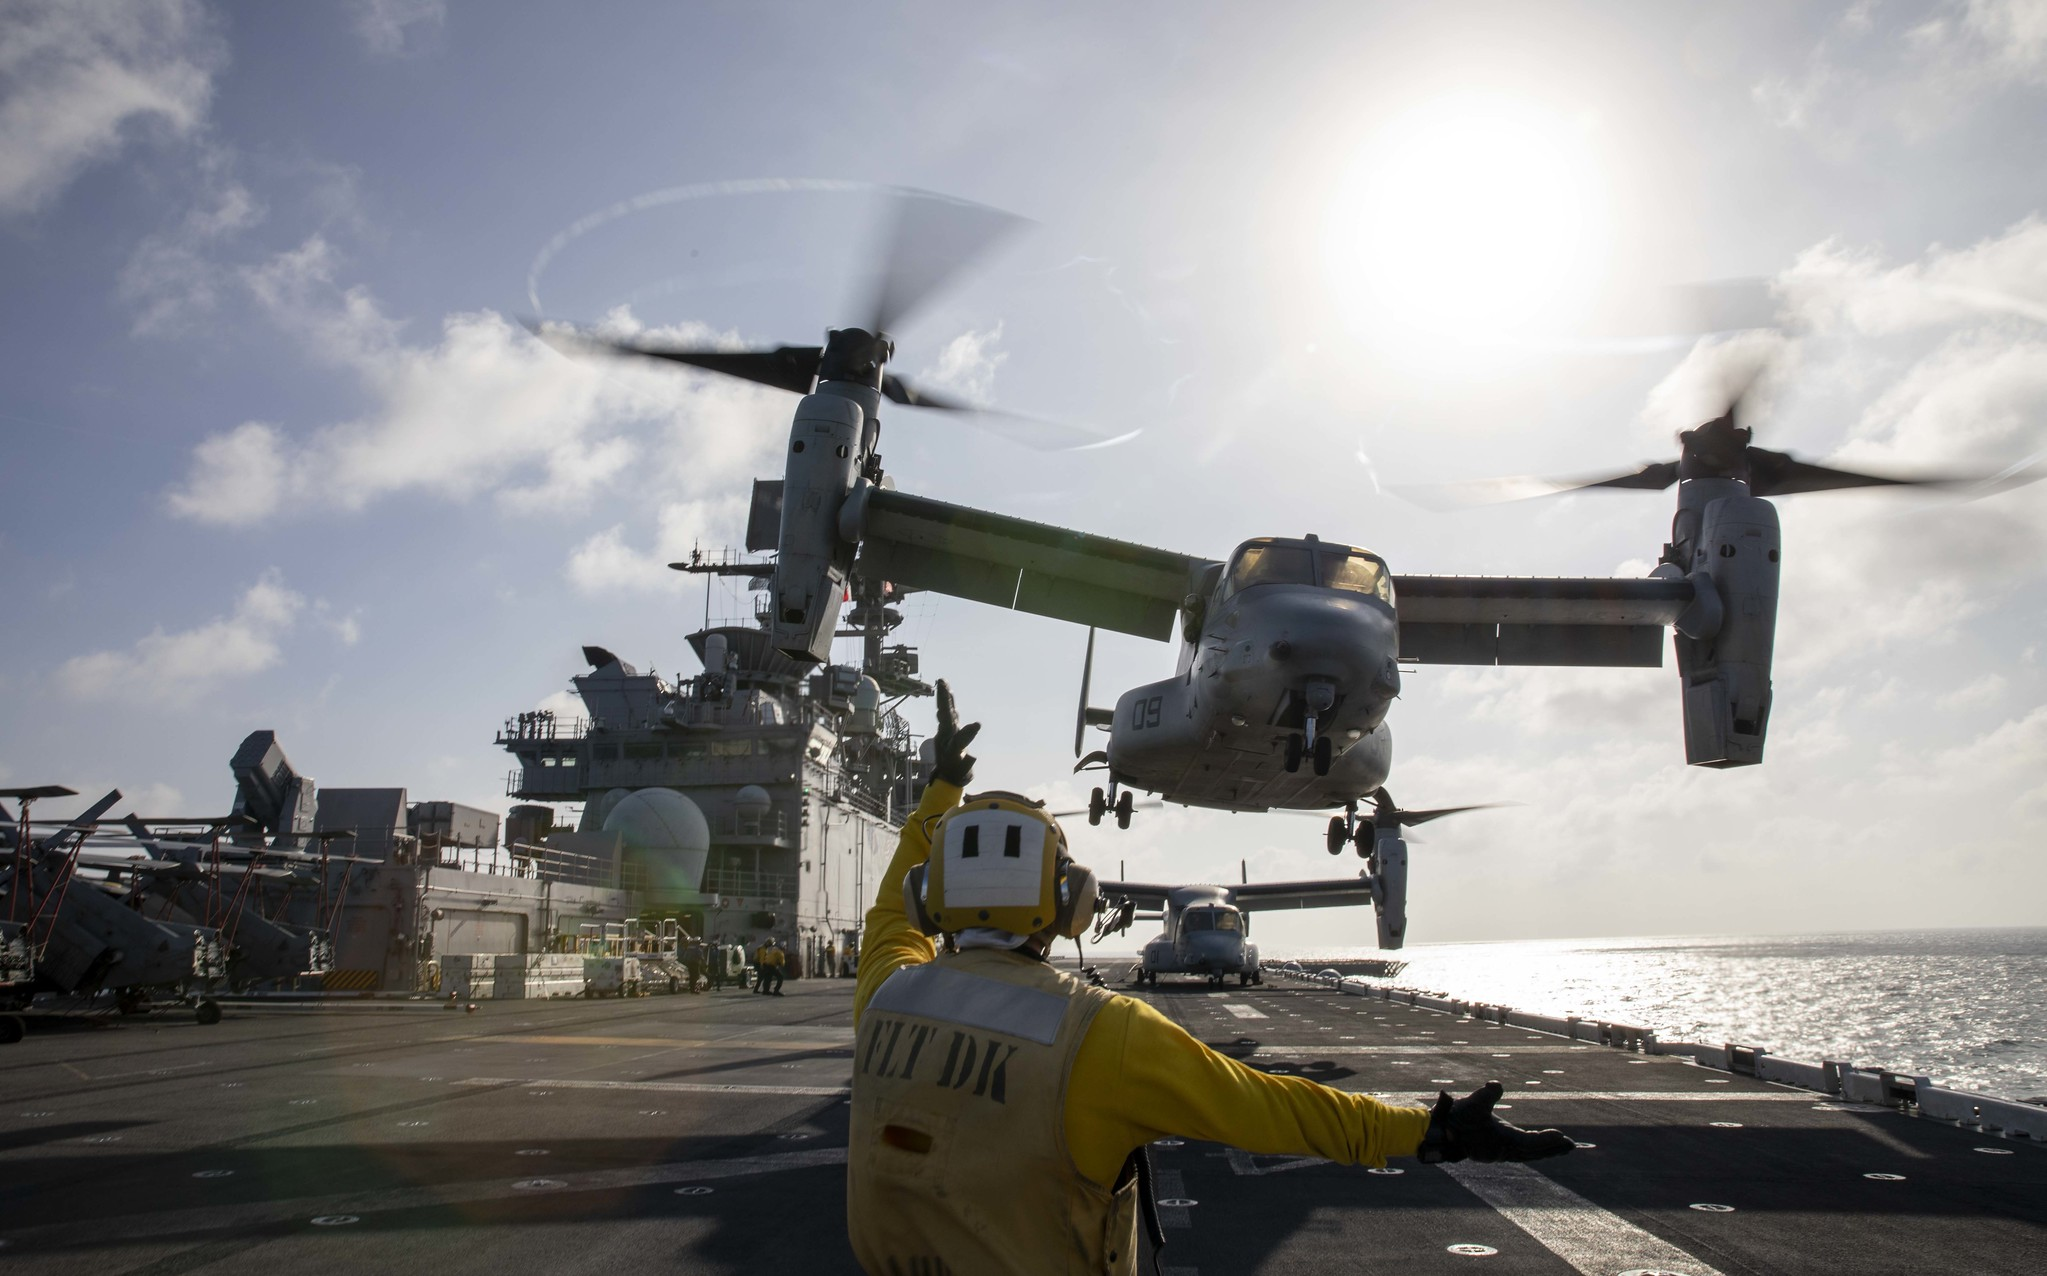 Aviation Boatswain's Mate (Handling) 2nd Class Skyler Campbell directs a Marine Corps MV-22 Osprey on Jan. 23, 2021, during takeoff from the amphibious assault ship USS Makin Island (LHD 8) in the Indian Ocean. (MC3 Aaron Sperle/Navy)